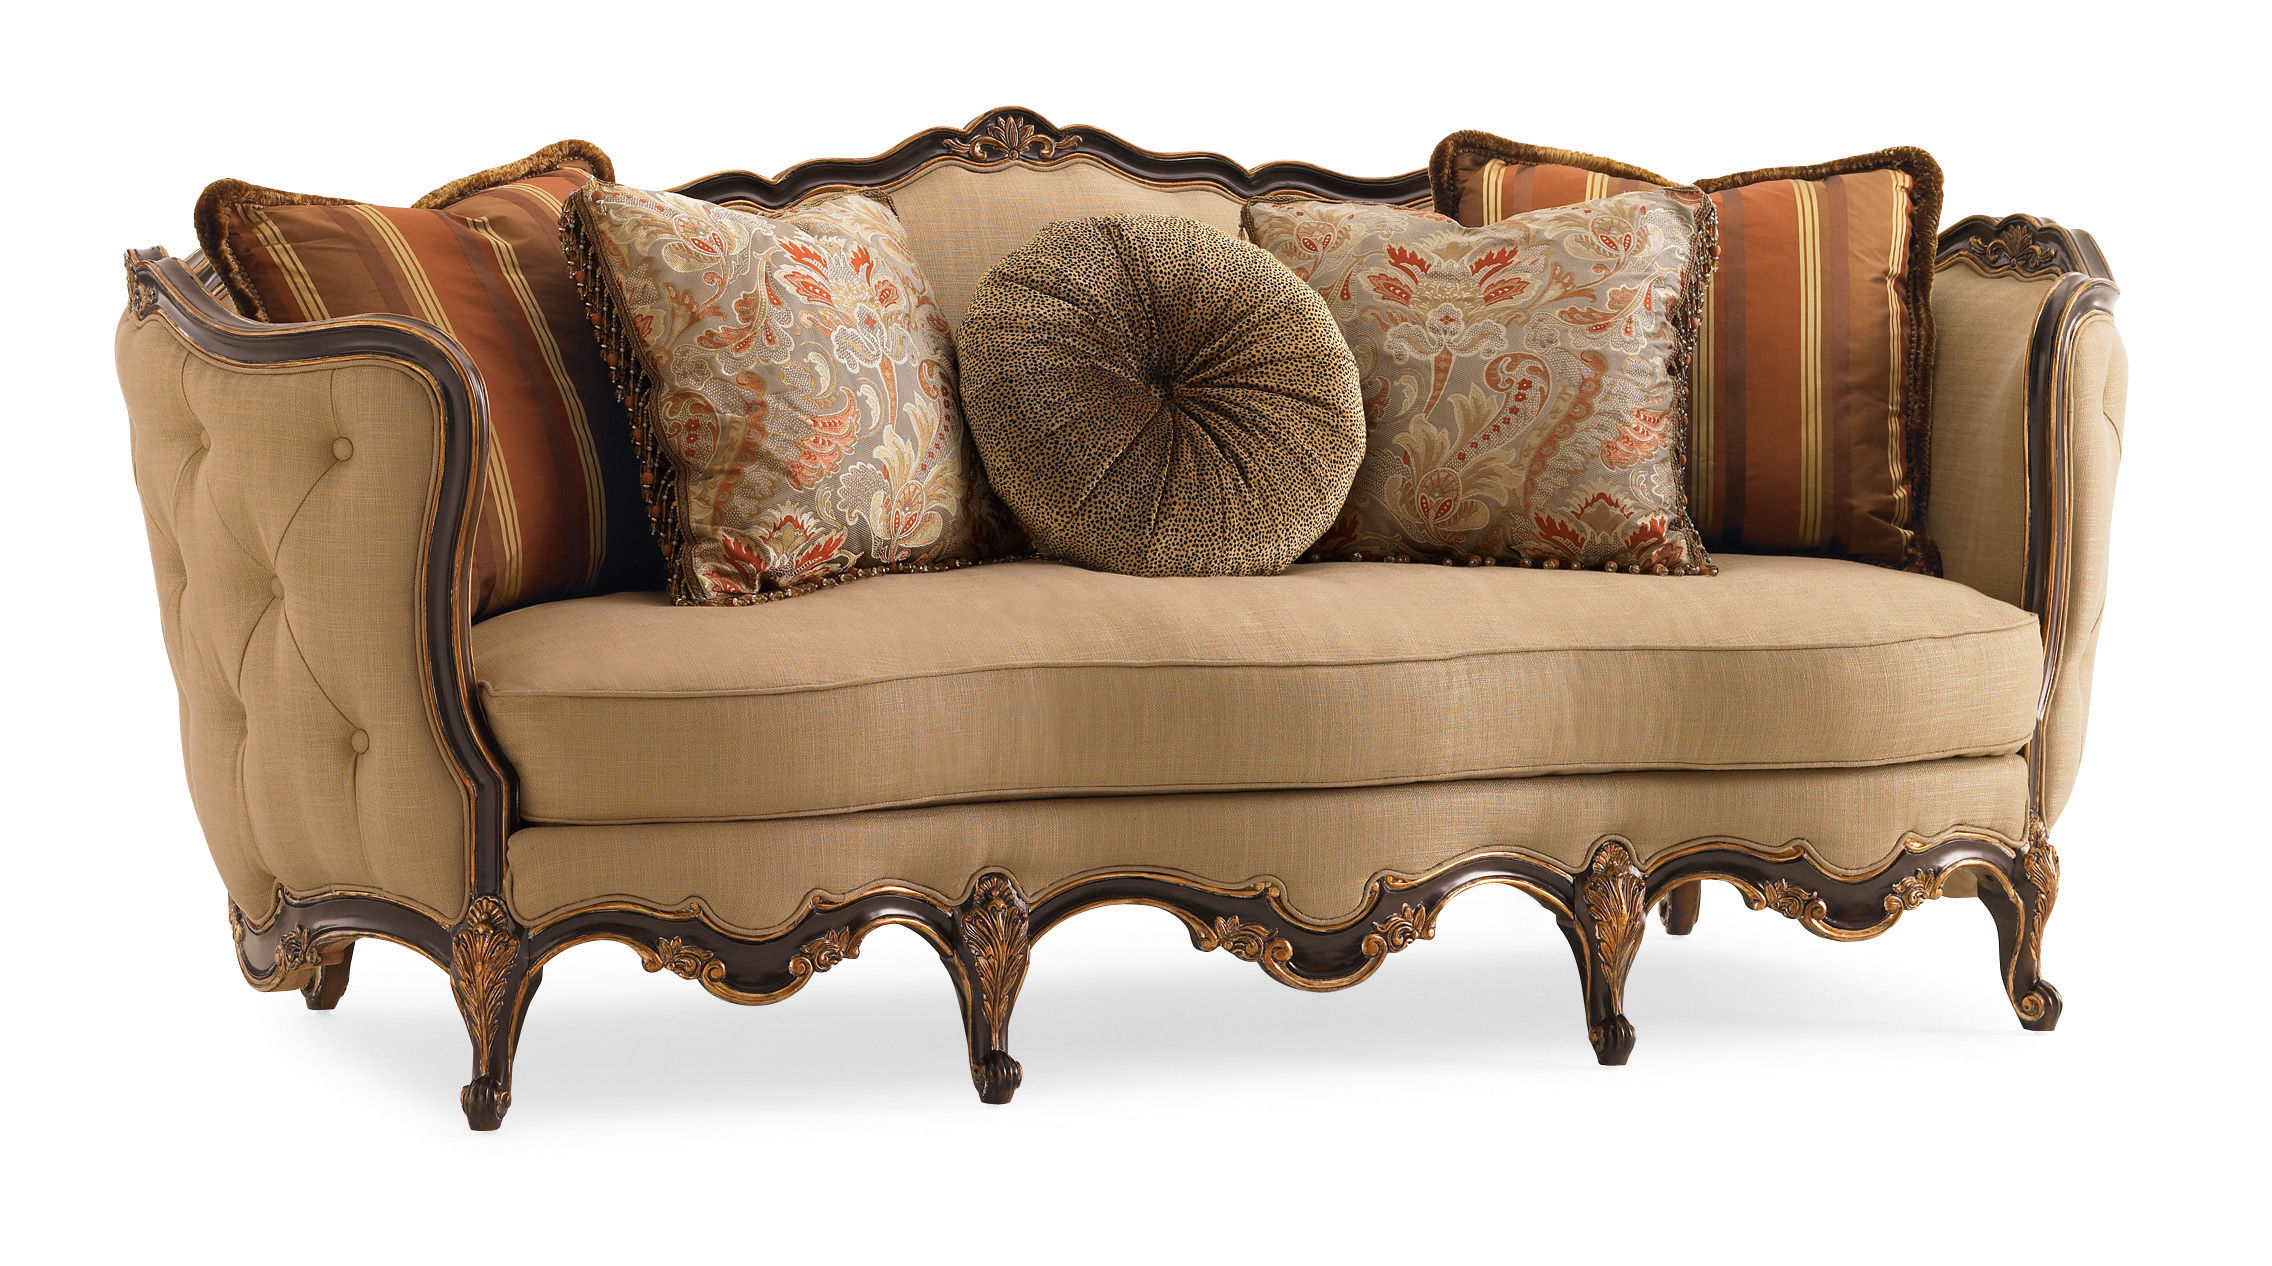 Nice Images Collection: Furniture Desktop Wallpapers